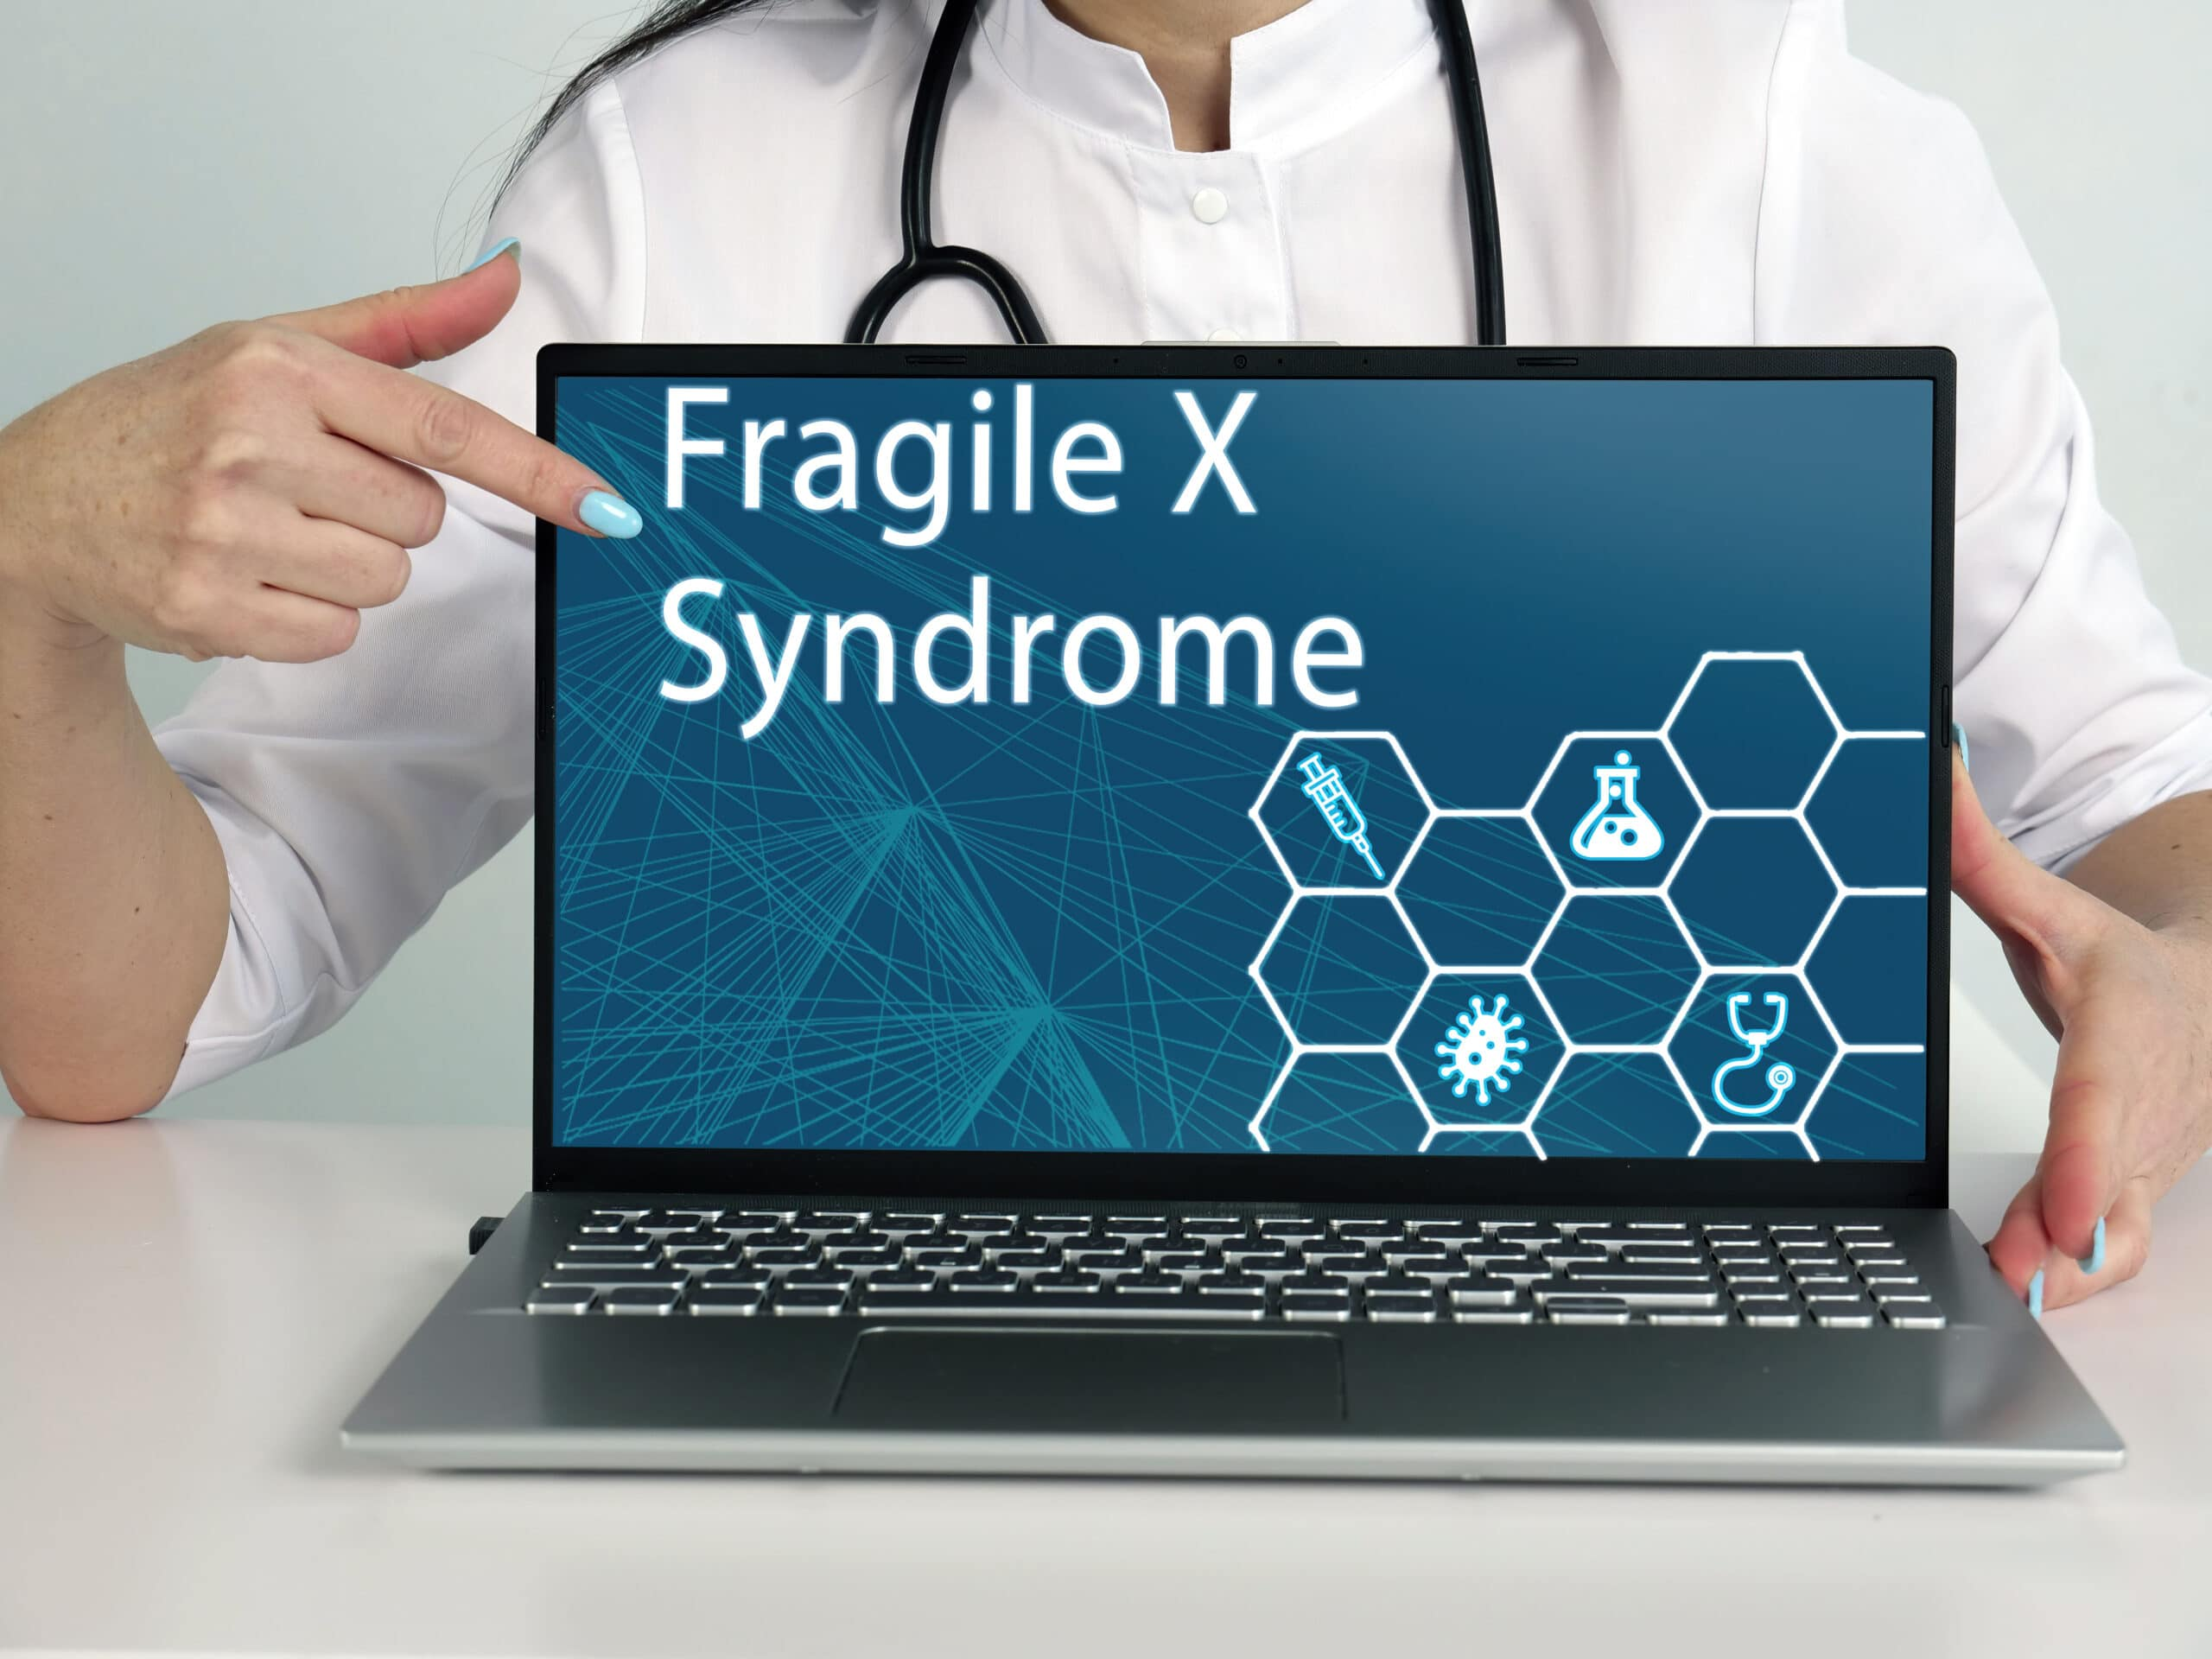 Blog.Learn About Fragile X Syndrome